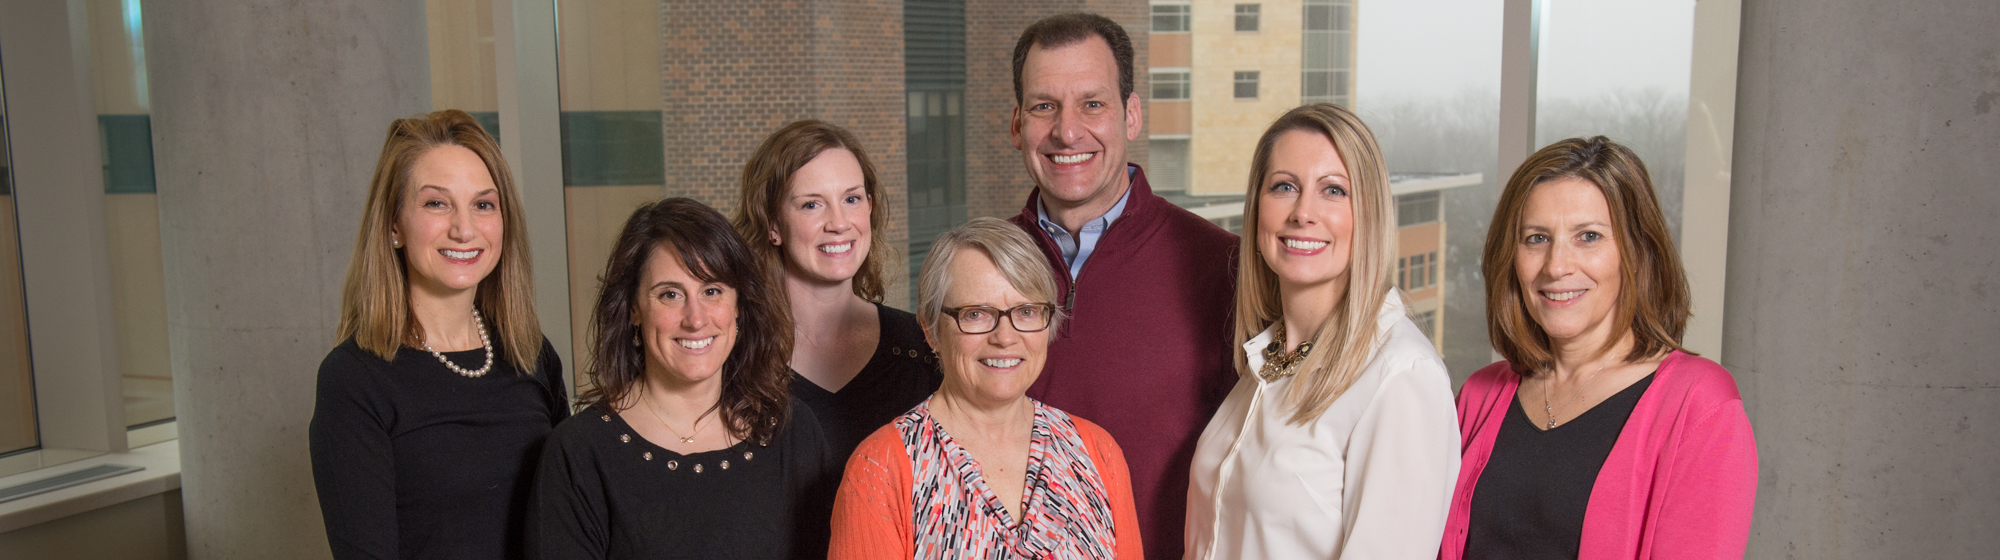 Staff from the UW-Madison Atherosclerosis Imaging Research Program